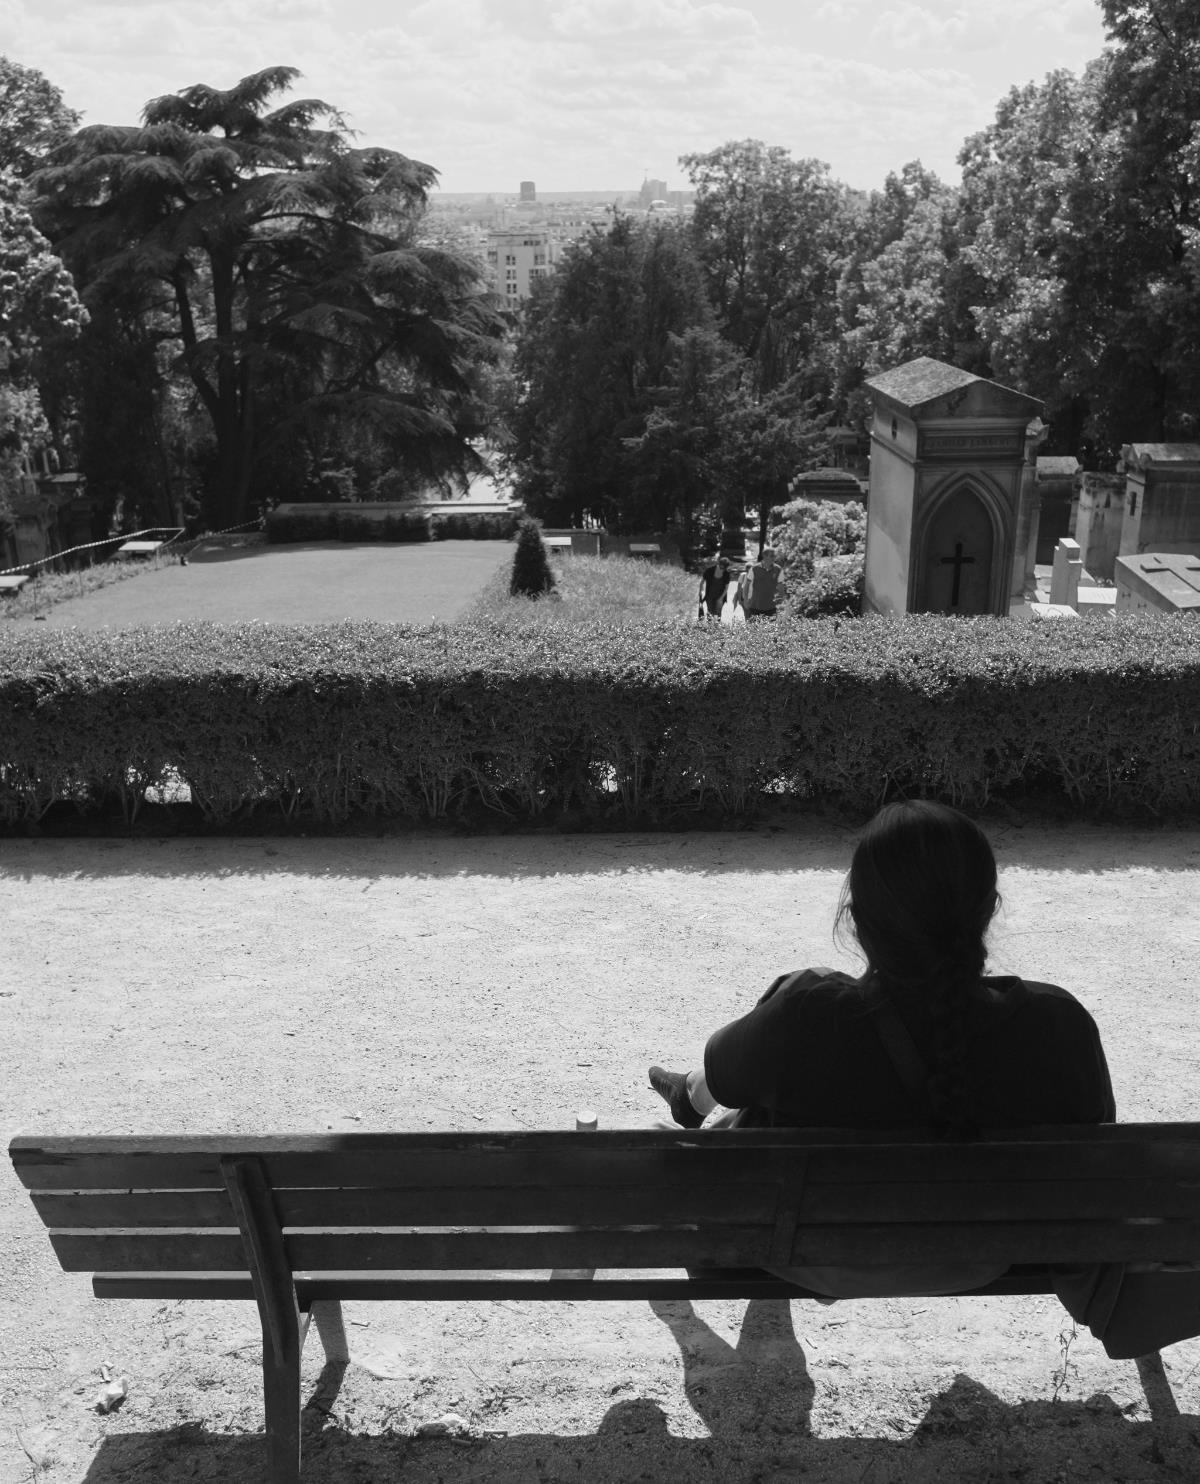 manjira, the view of paris from pere lachaise, paris, july 2013